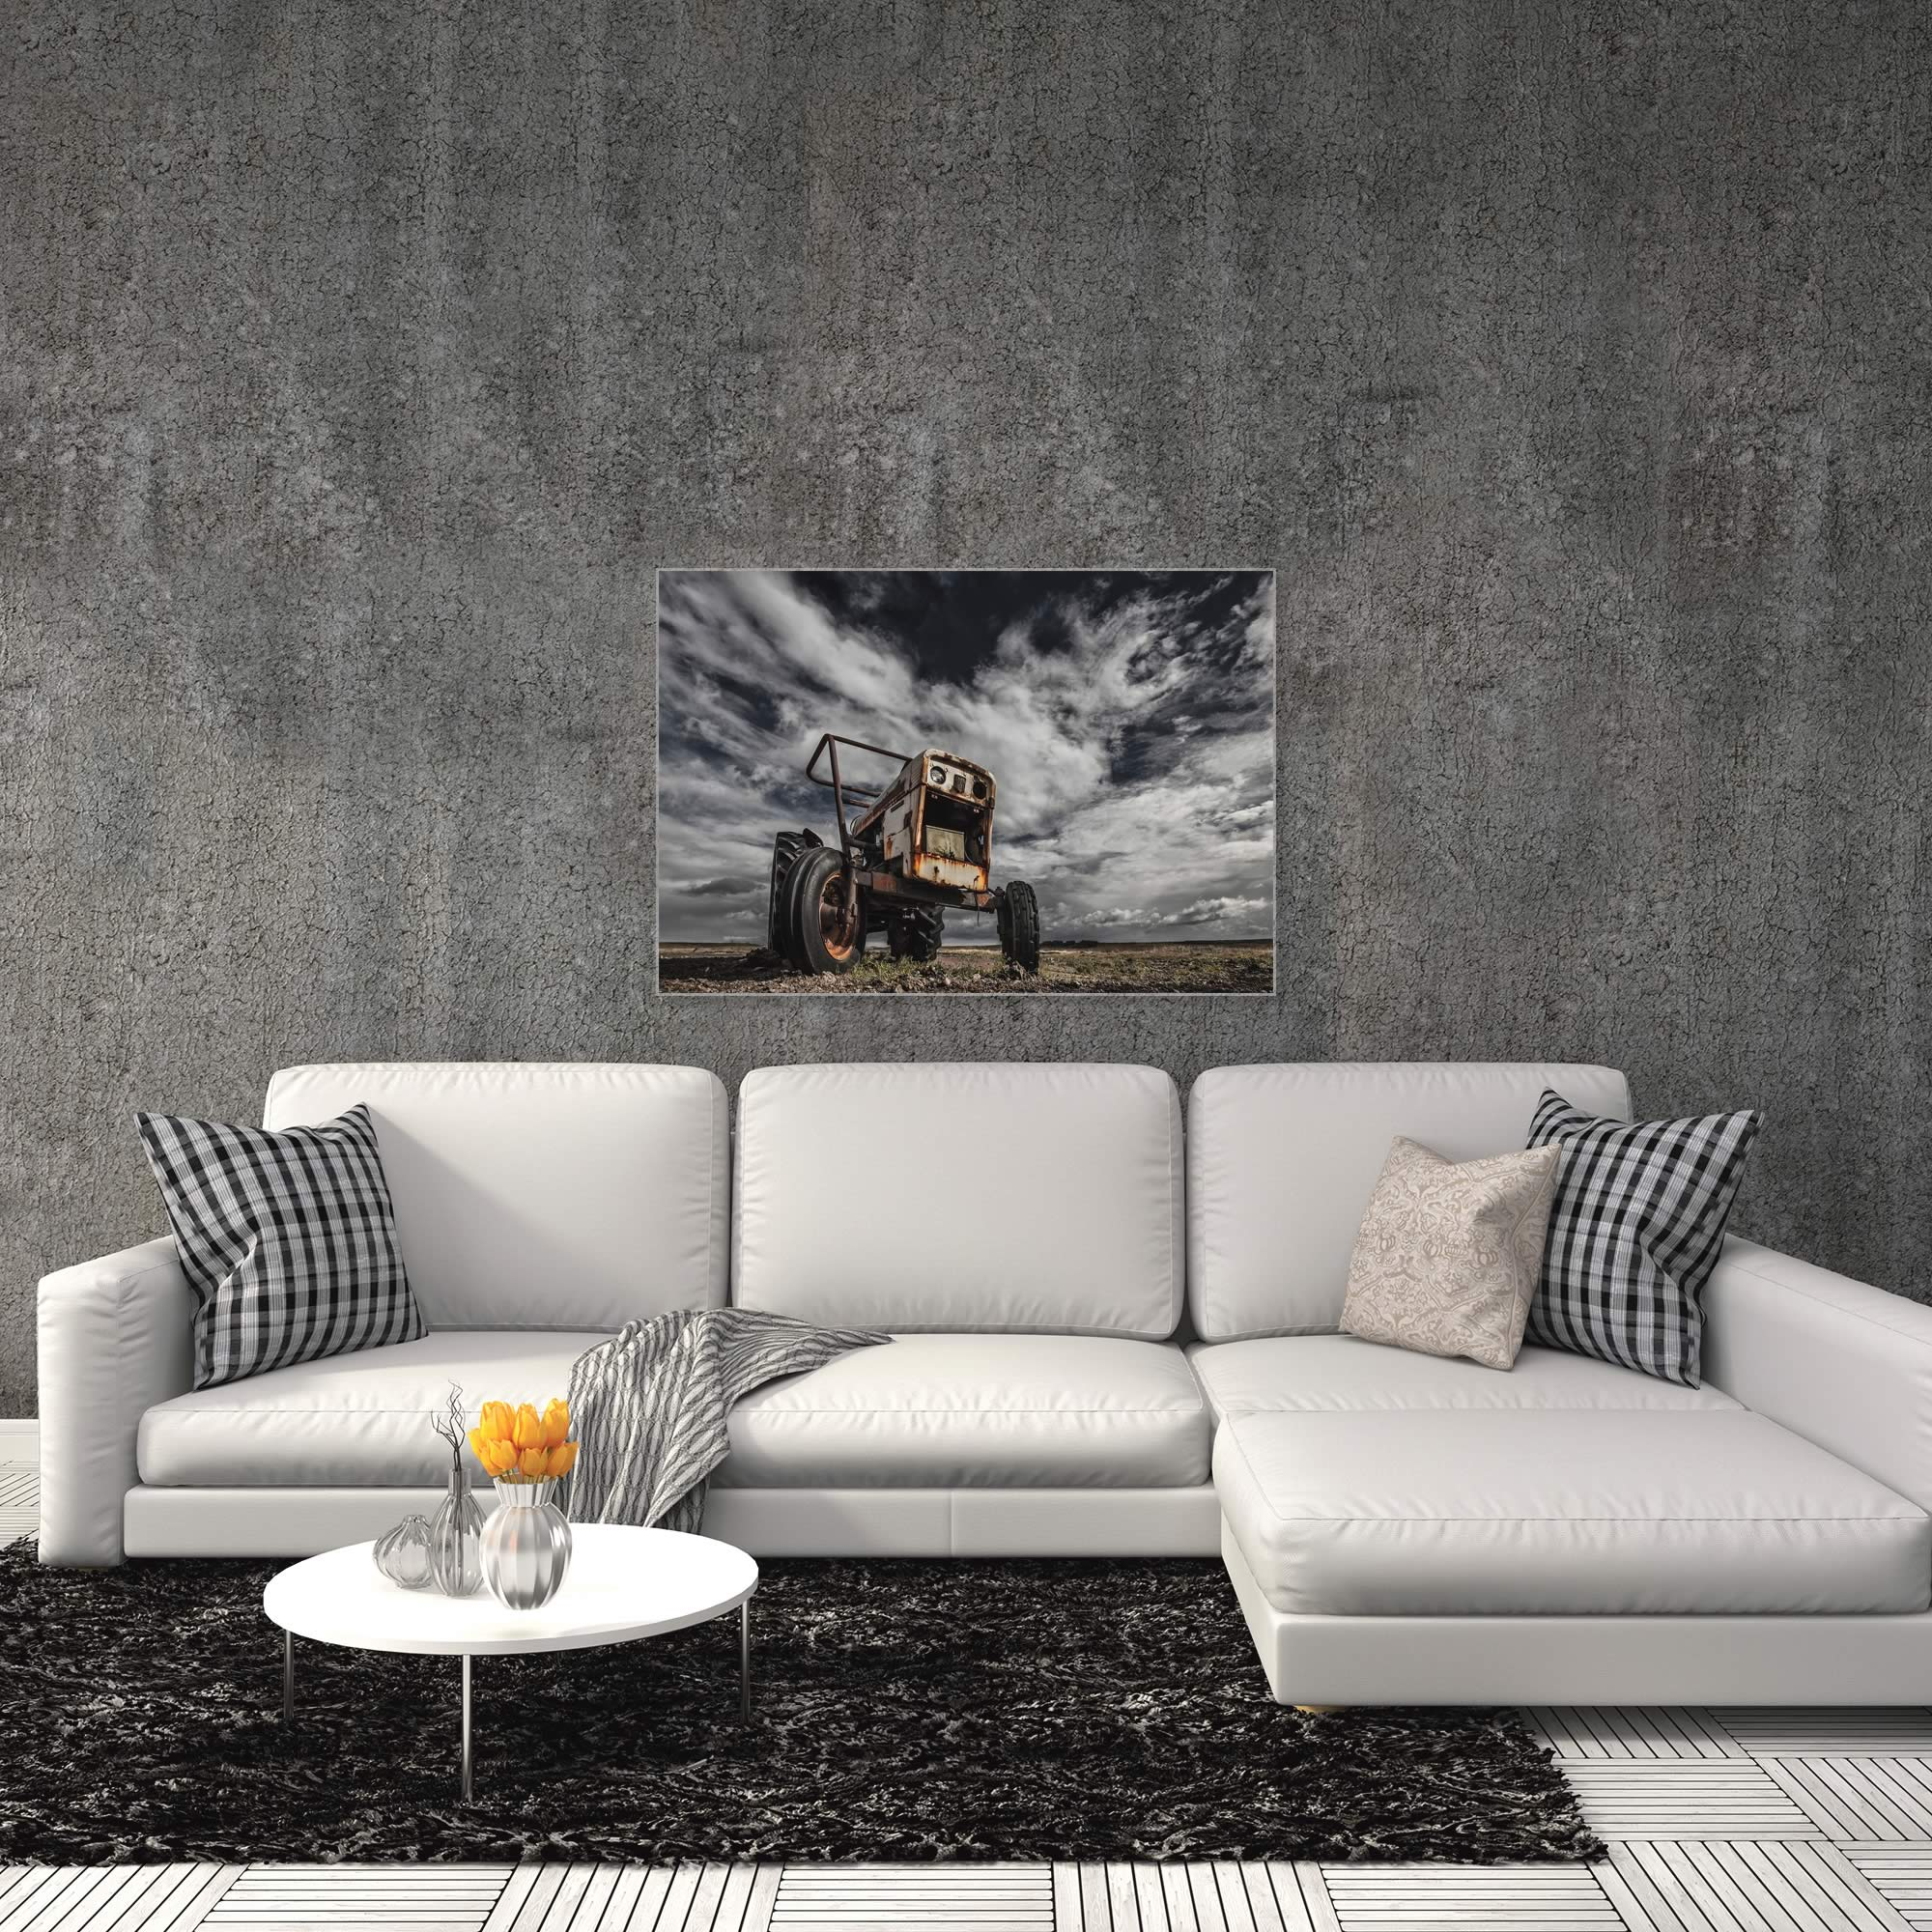 The Tractor Scream by Bragi Ingibergsson - Industrial Art on Metal or Acrylic - Alternate View 3